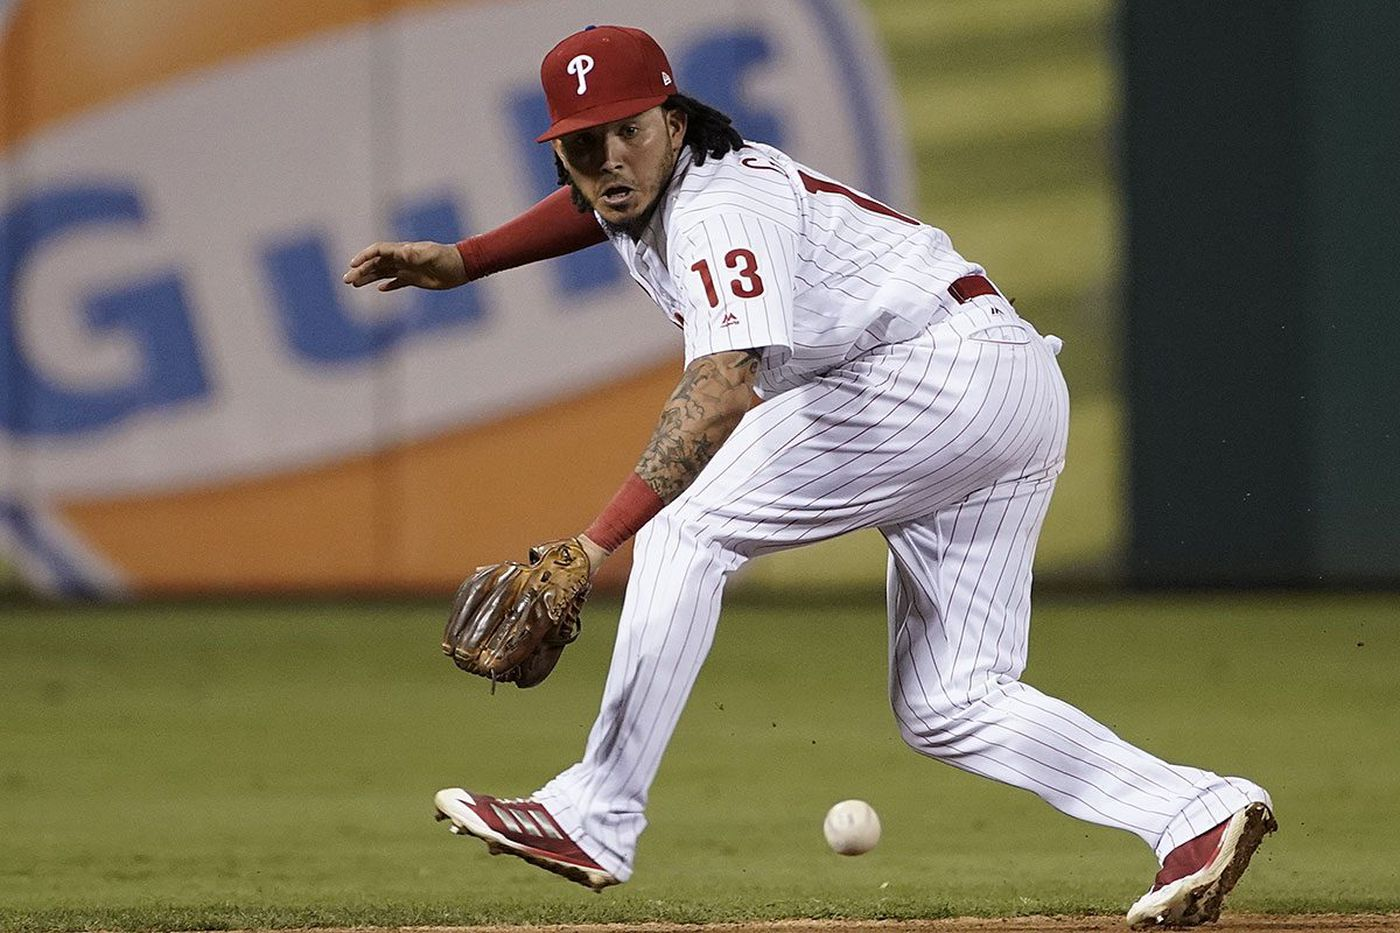 Freddy Galvis' golden glove could be moving elsewhere next season | Bob Brookover